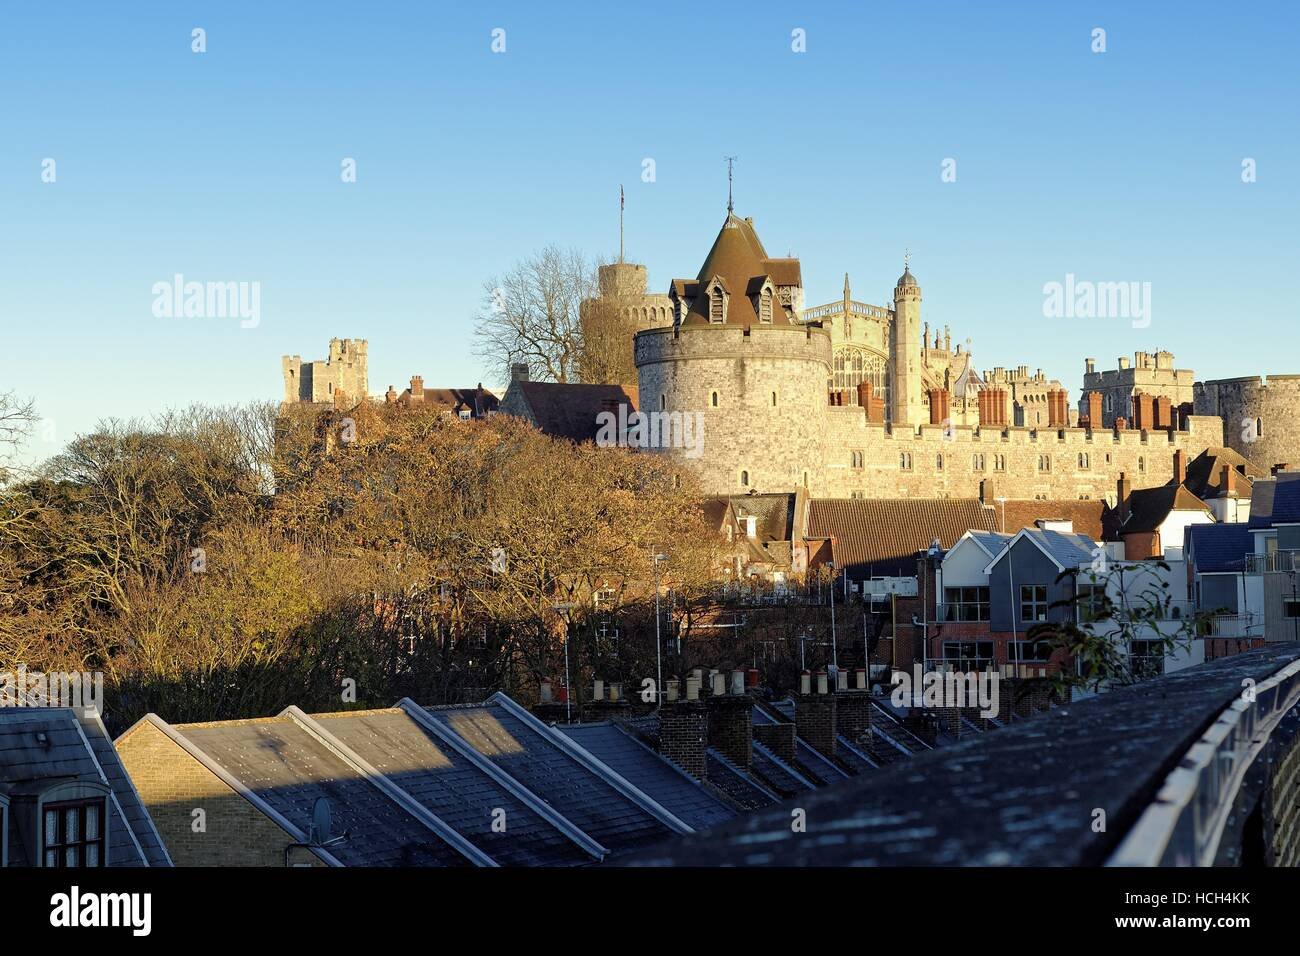 Windsor Castle at sunset Berkshire Uk - Stock Image